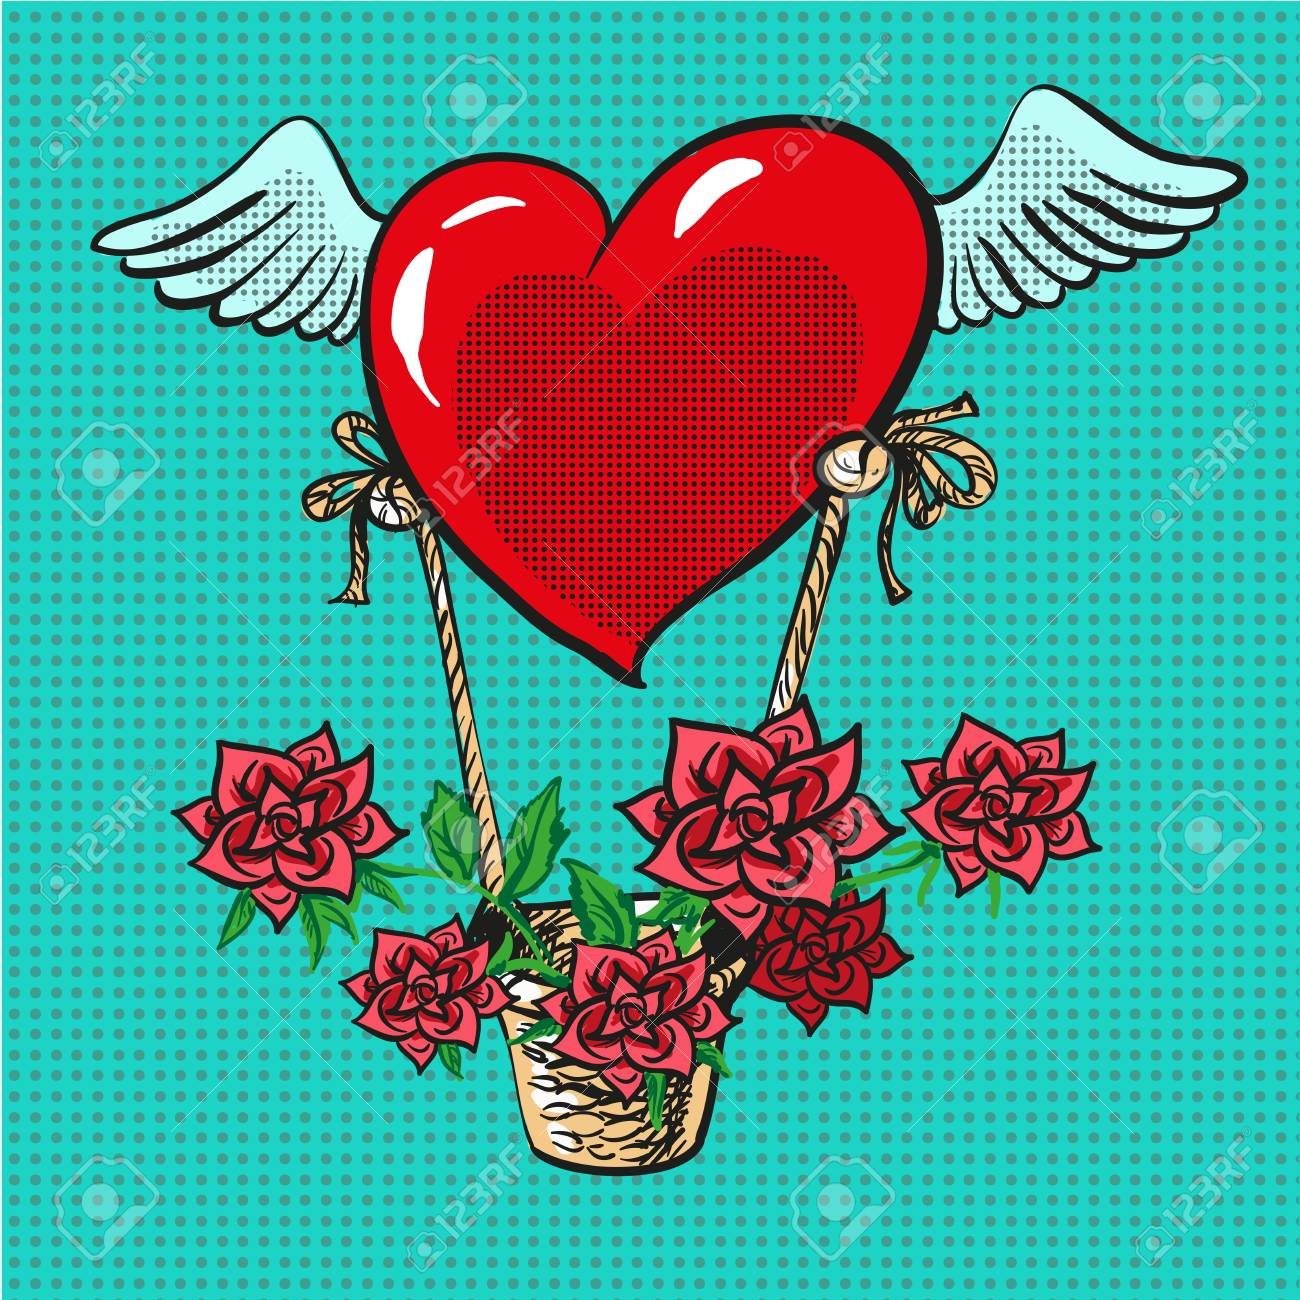 Heart with wings flying roses basket pop art comic vector - 70766075